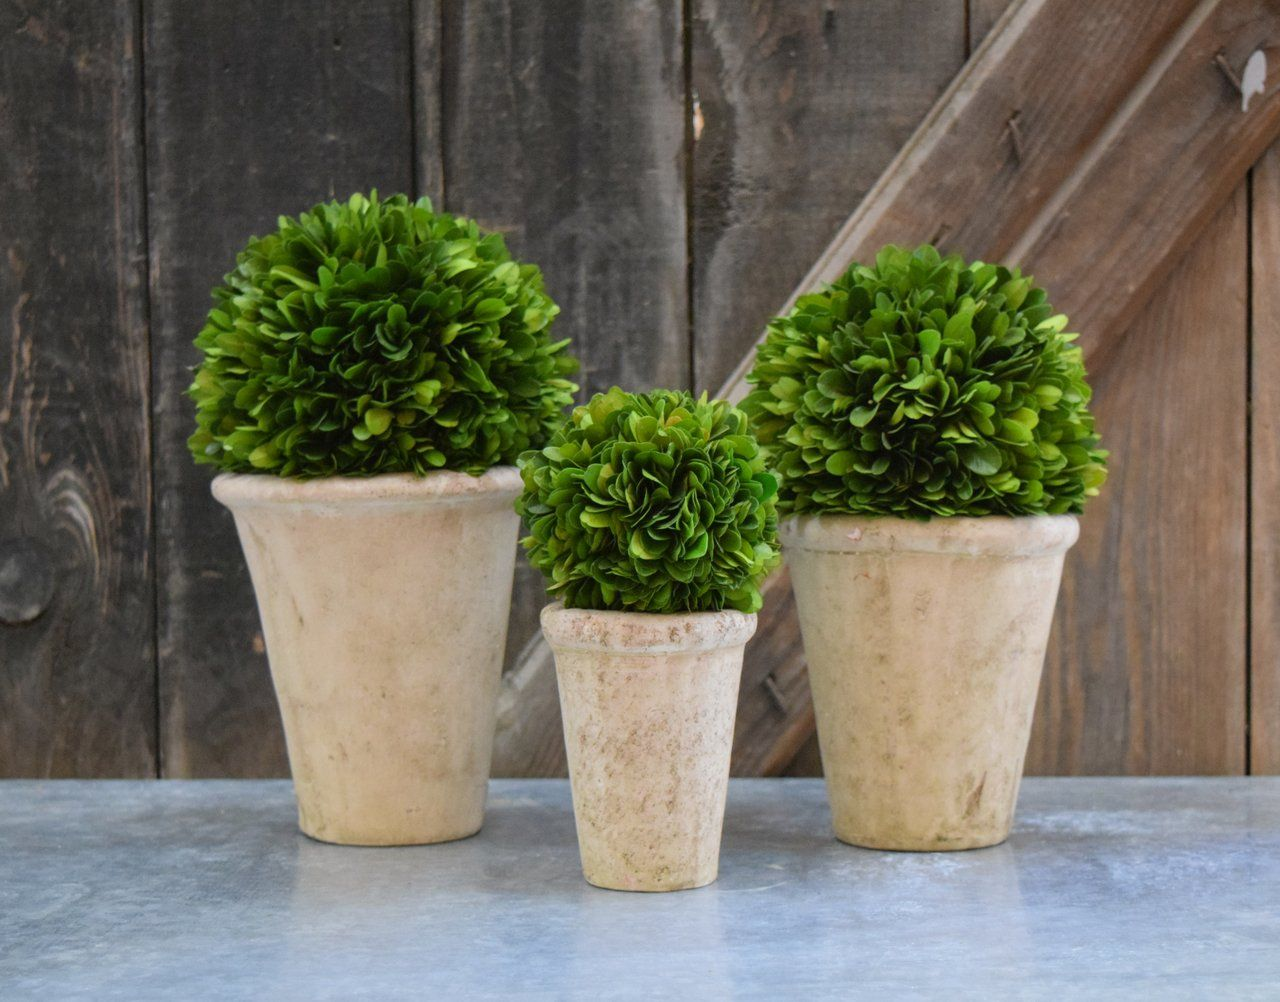 Preserved Boxwood Ball In Pots Set Of 3 In 2020 Preserved Boxwood Pot Sets Terracotta Pots